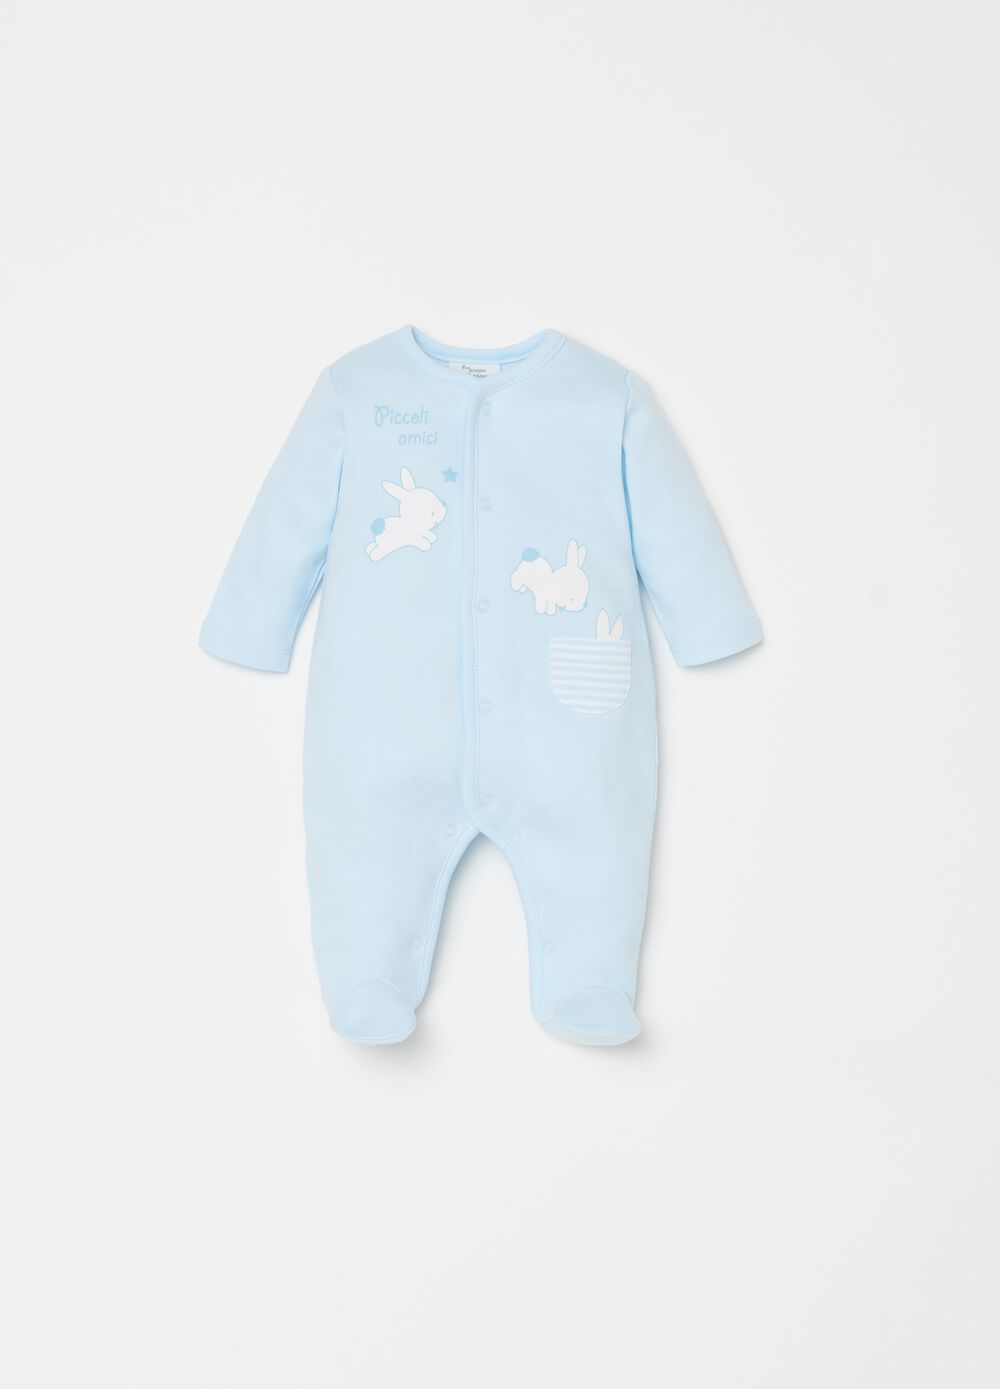 Onesie with feet, pocket, print and stripes